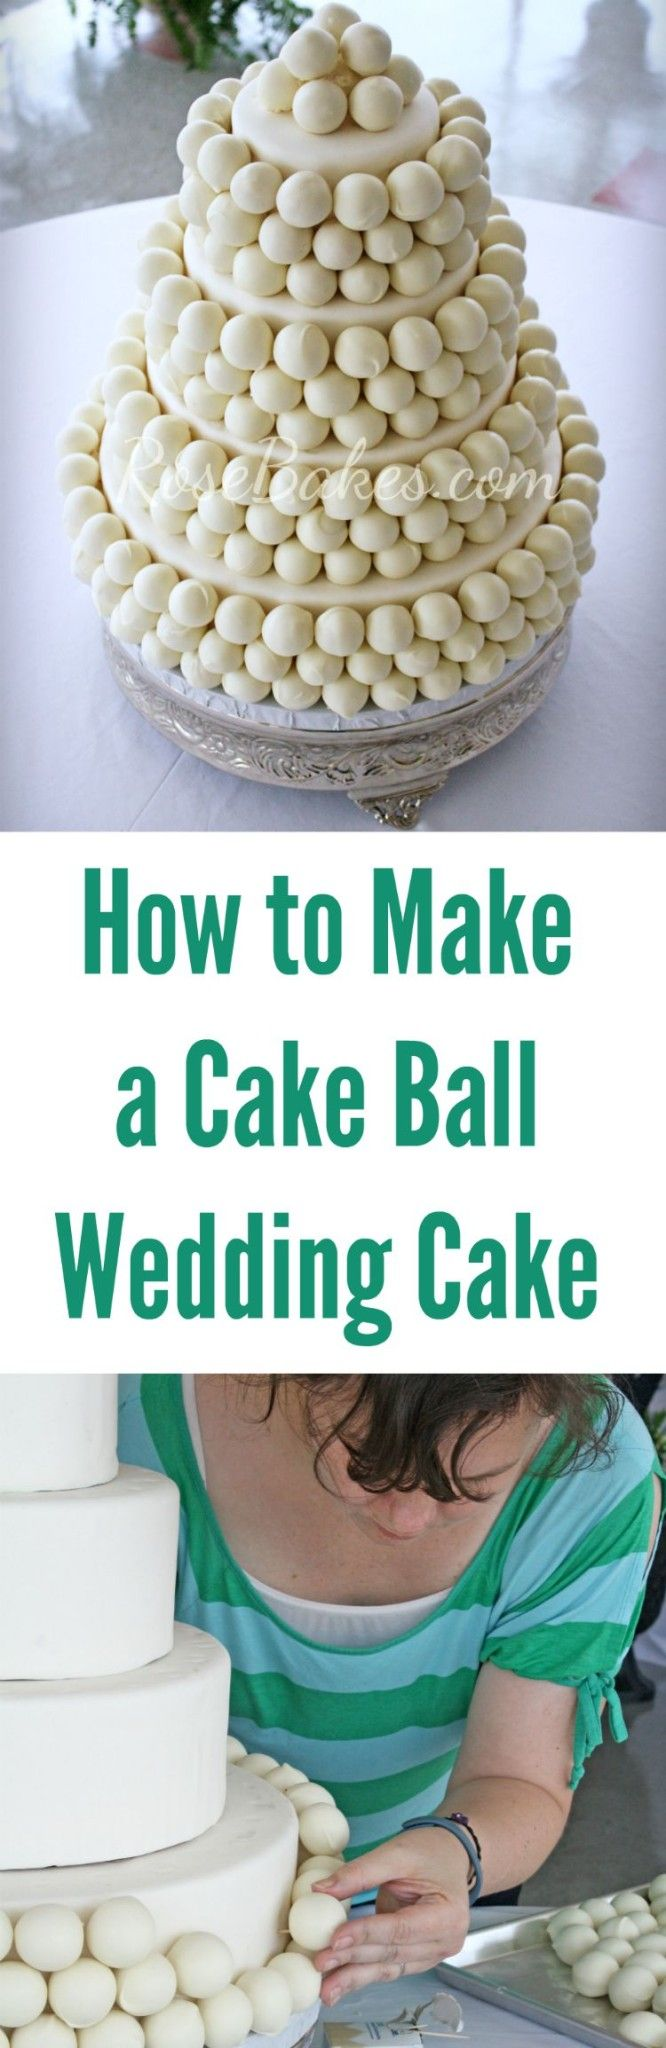 Such An Awesome Way To Display Cake Pops How Make A Ball Wedding